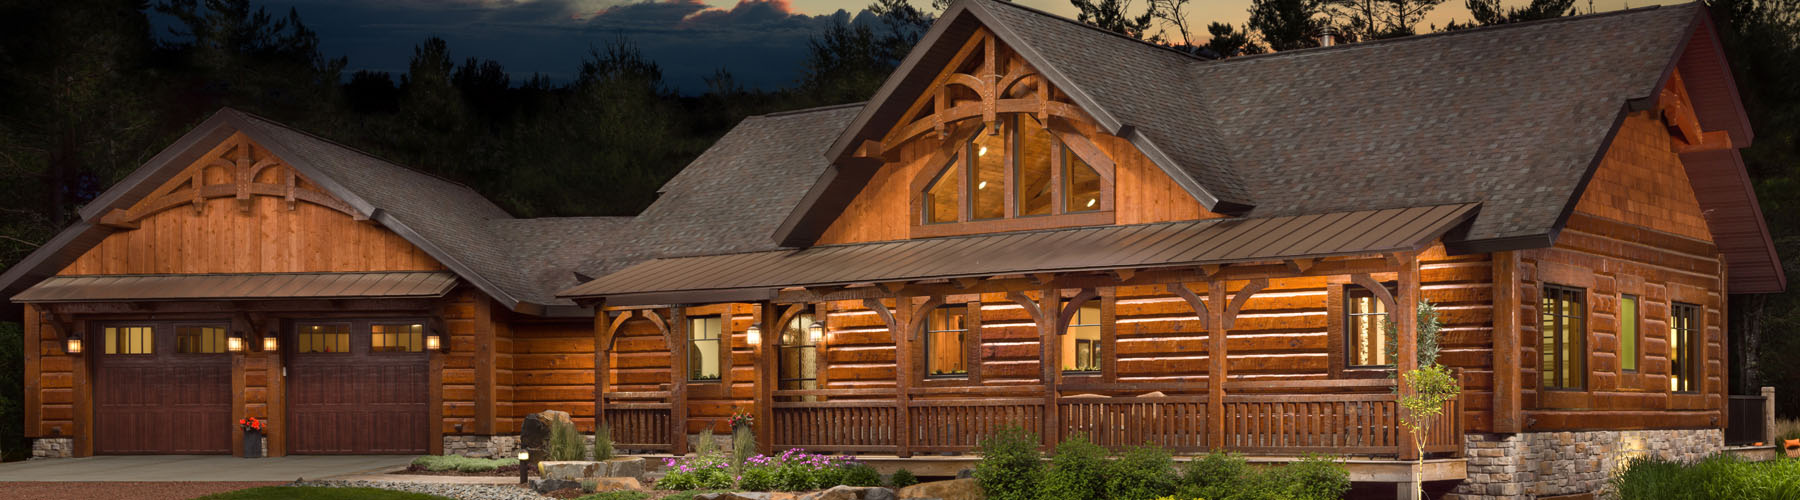 Timber Ranch 2286AR-UCT Ranch Ultra Custom Timber